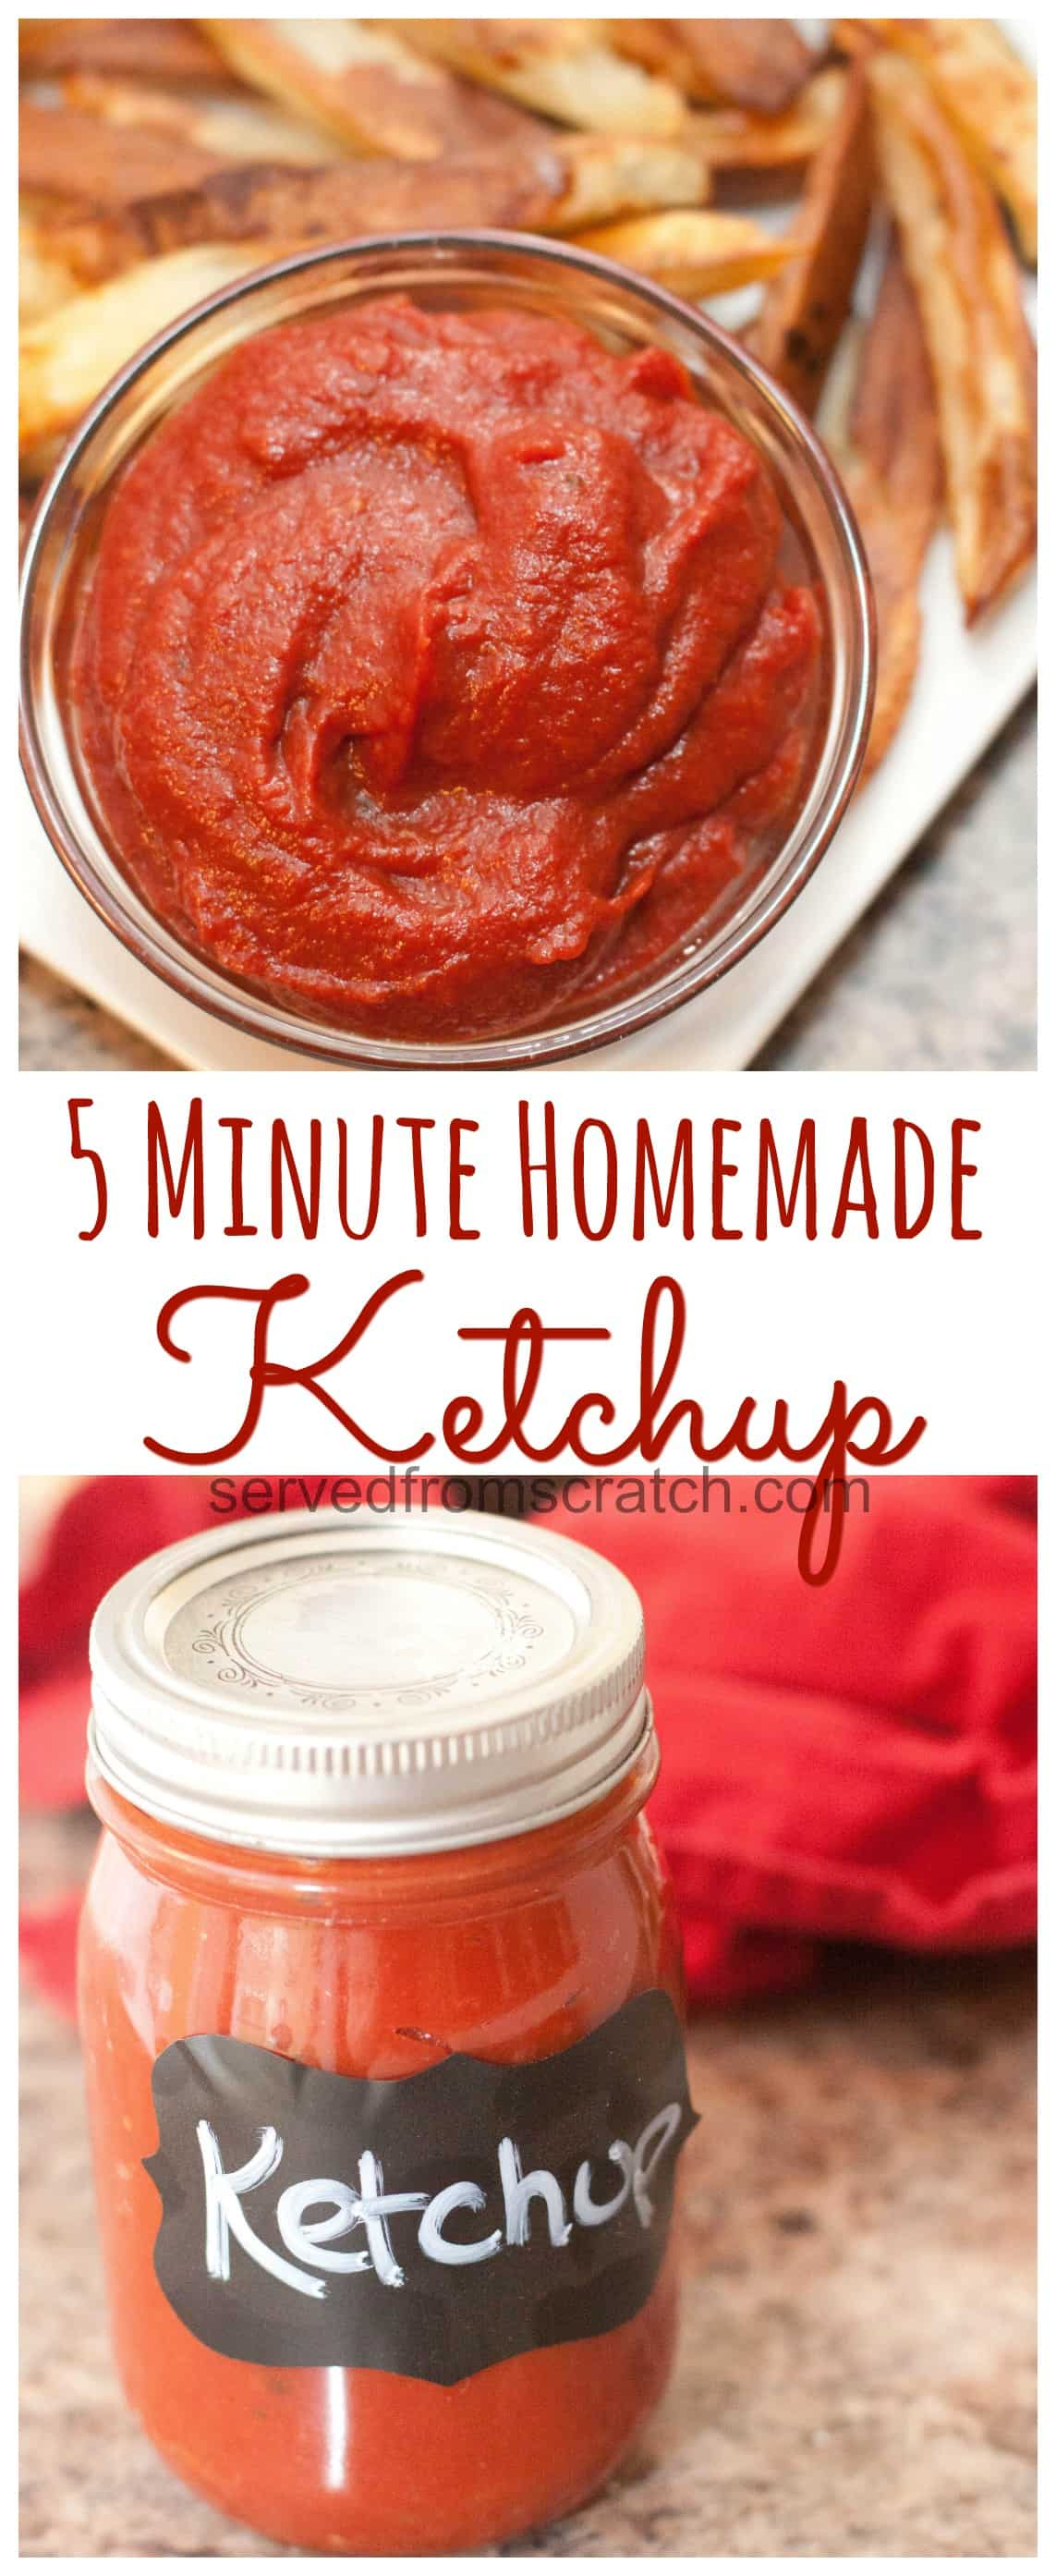 homemade-ketchup-made-in-less-than-5-minutes